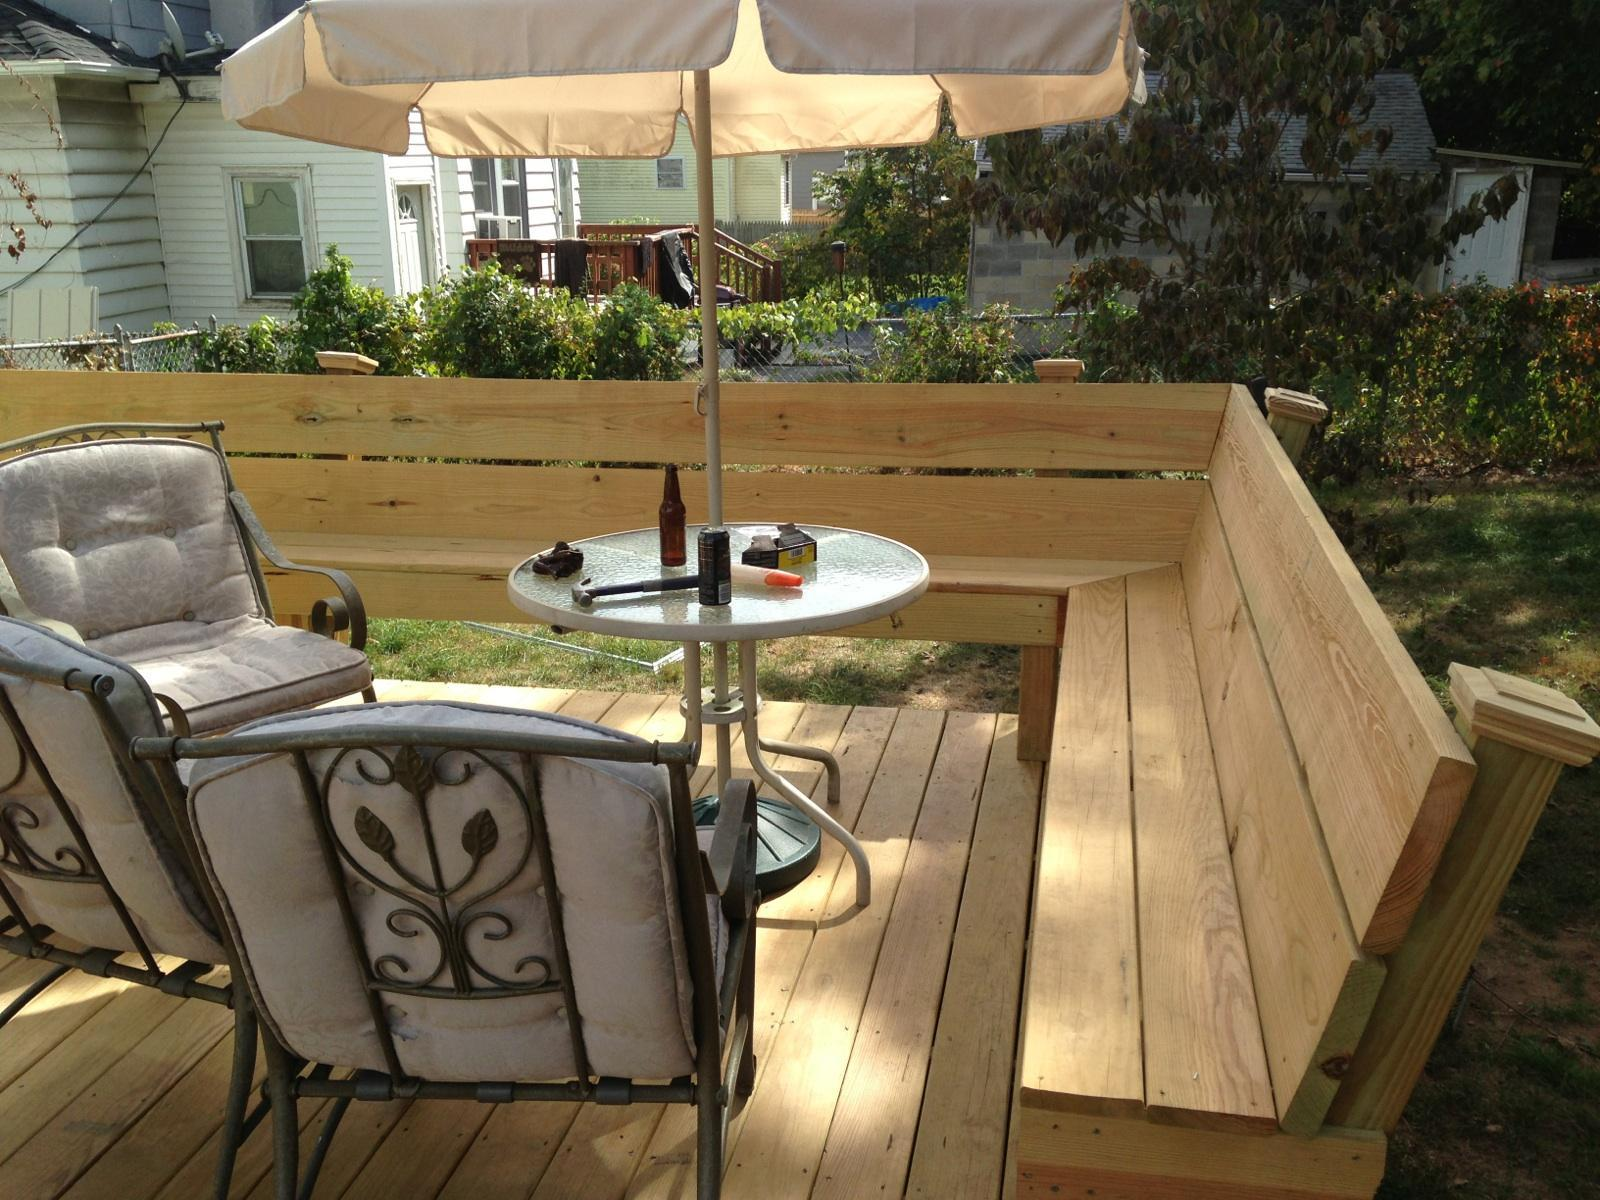 New Deck Construction in New Haven, CT - After Photo